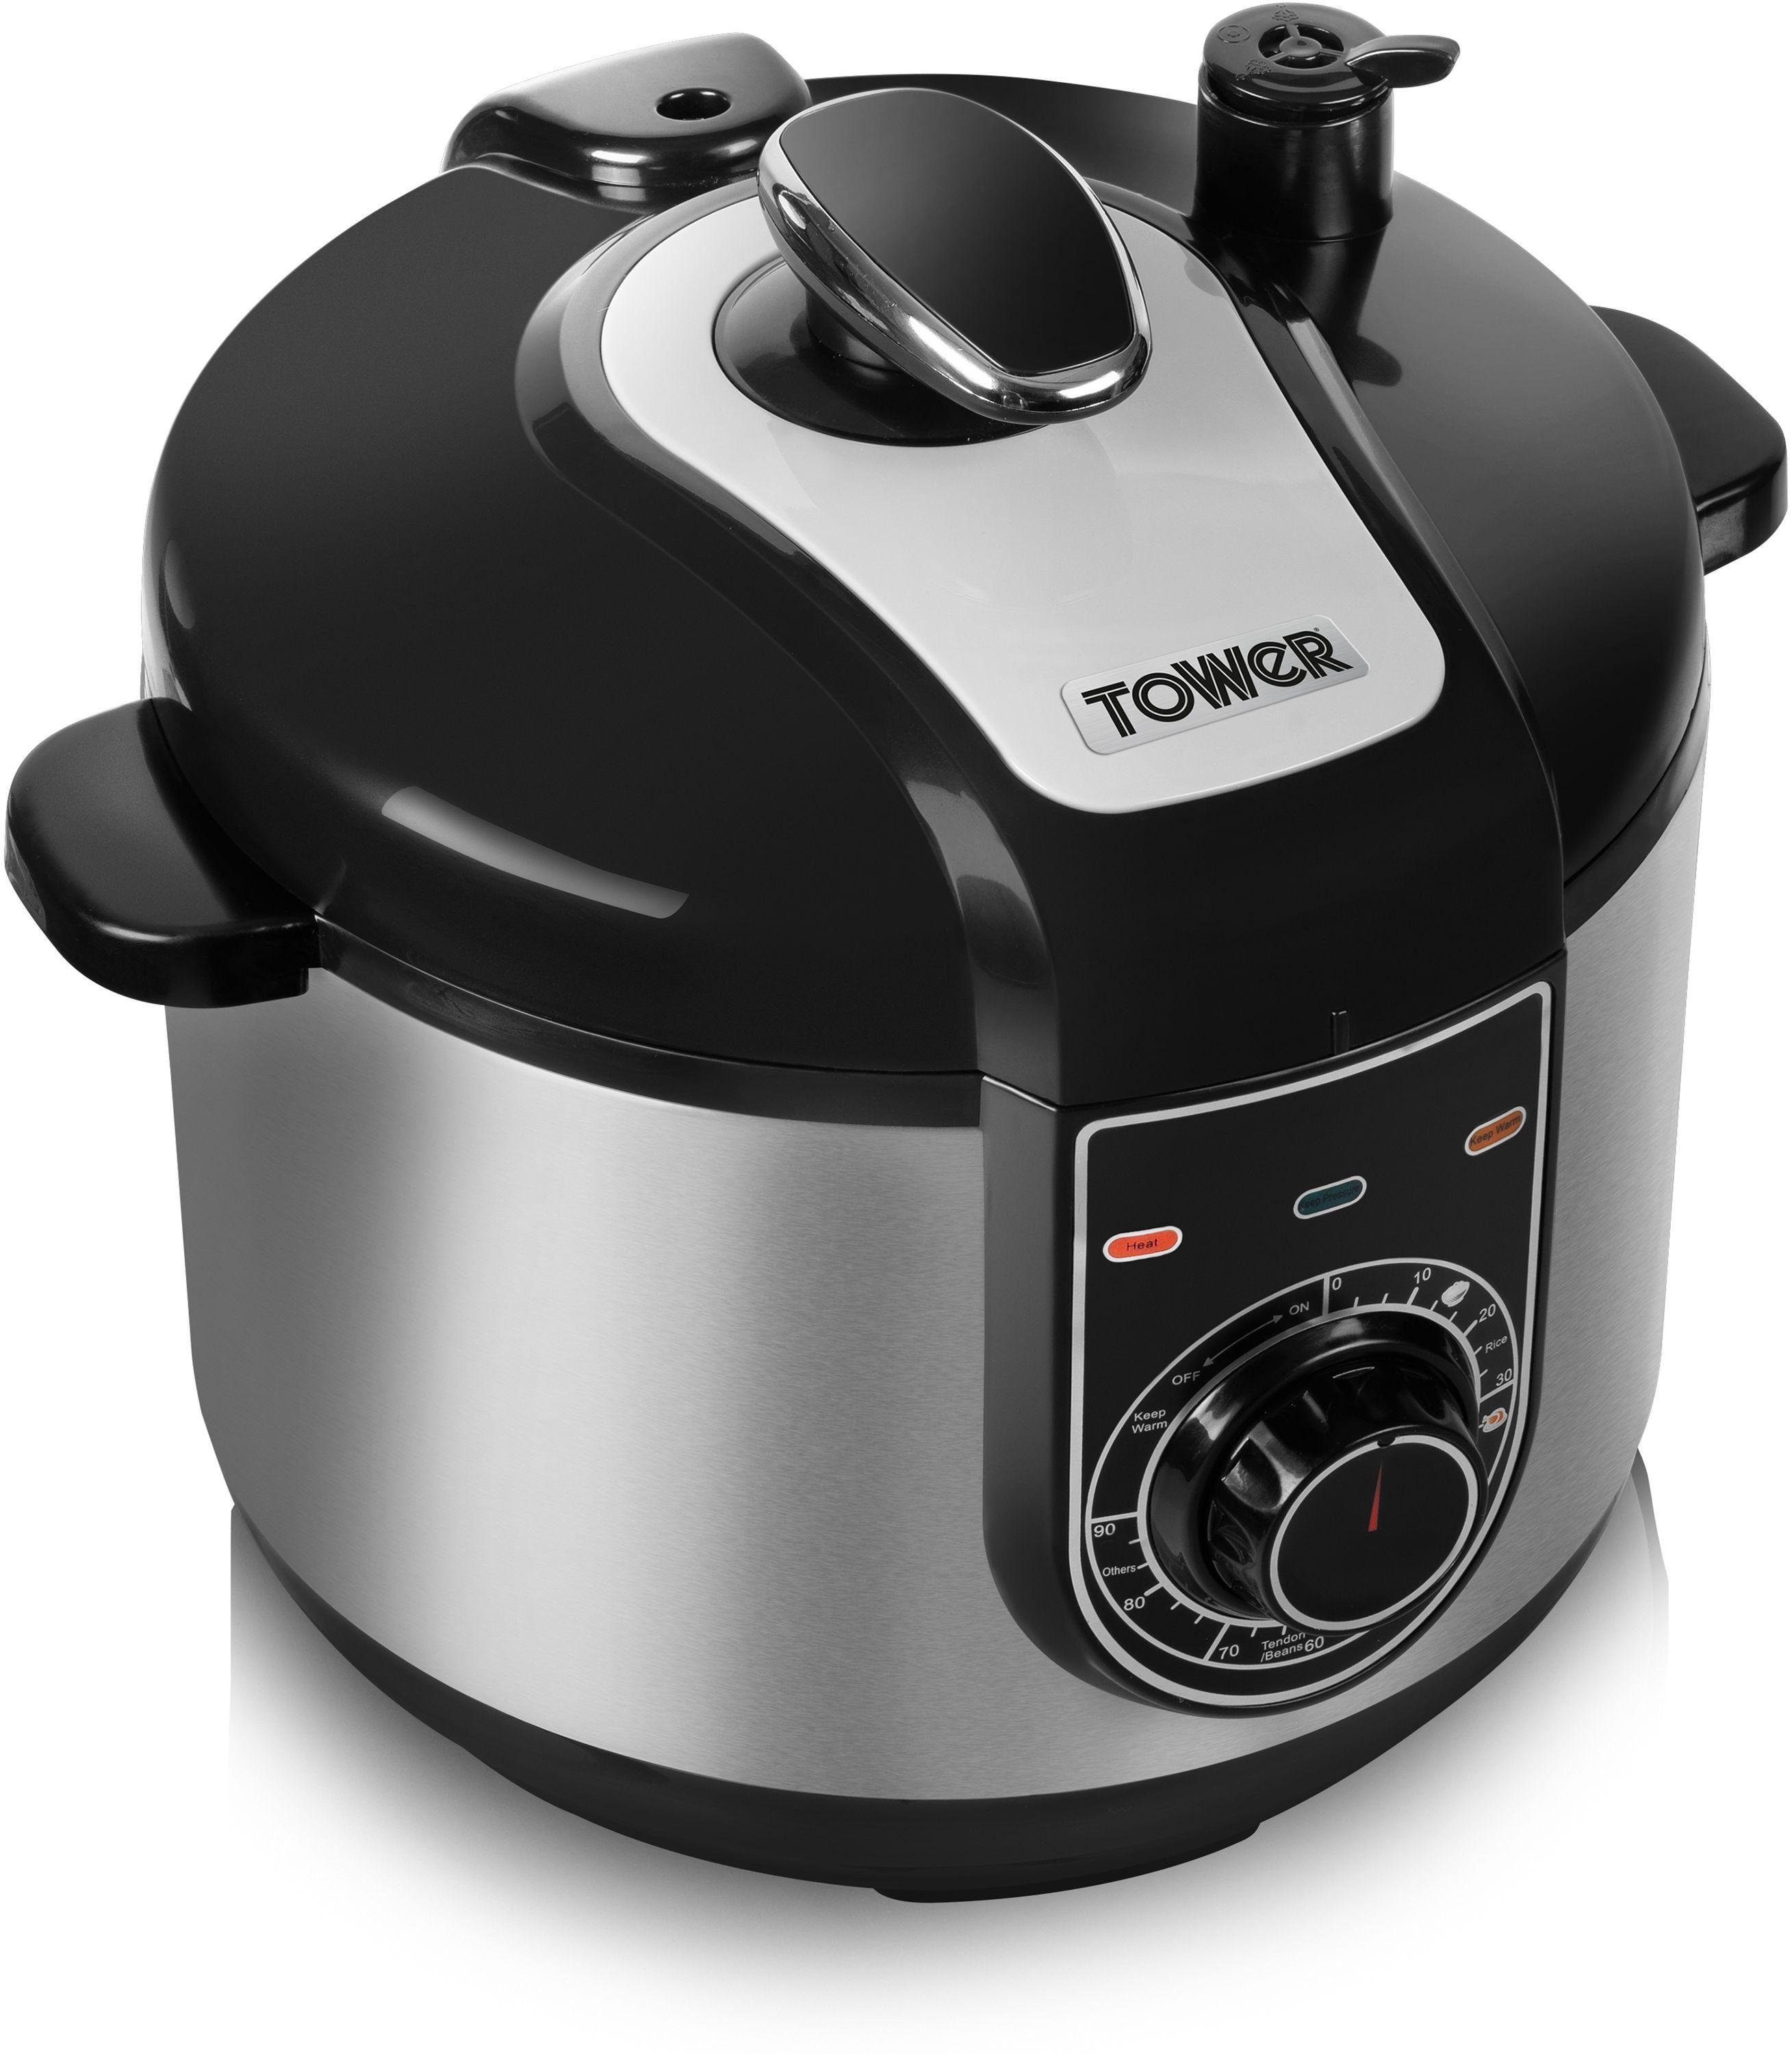 tower 5l electric pressure cooker stainless steel review. Black Bedroom Furniture Sets. Home Design Ideas